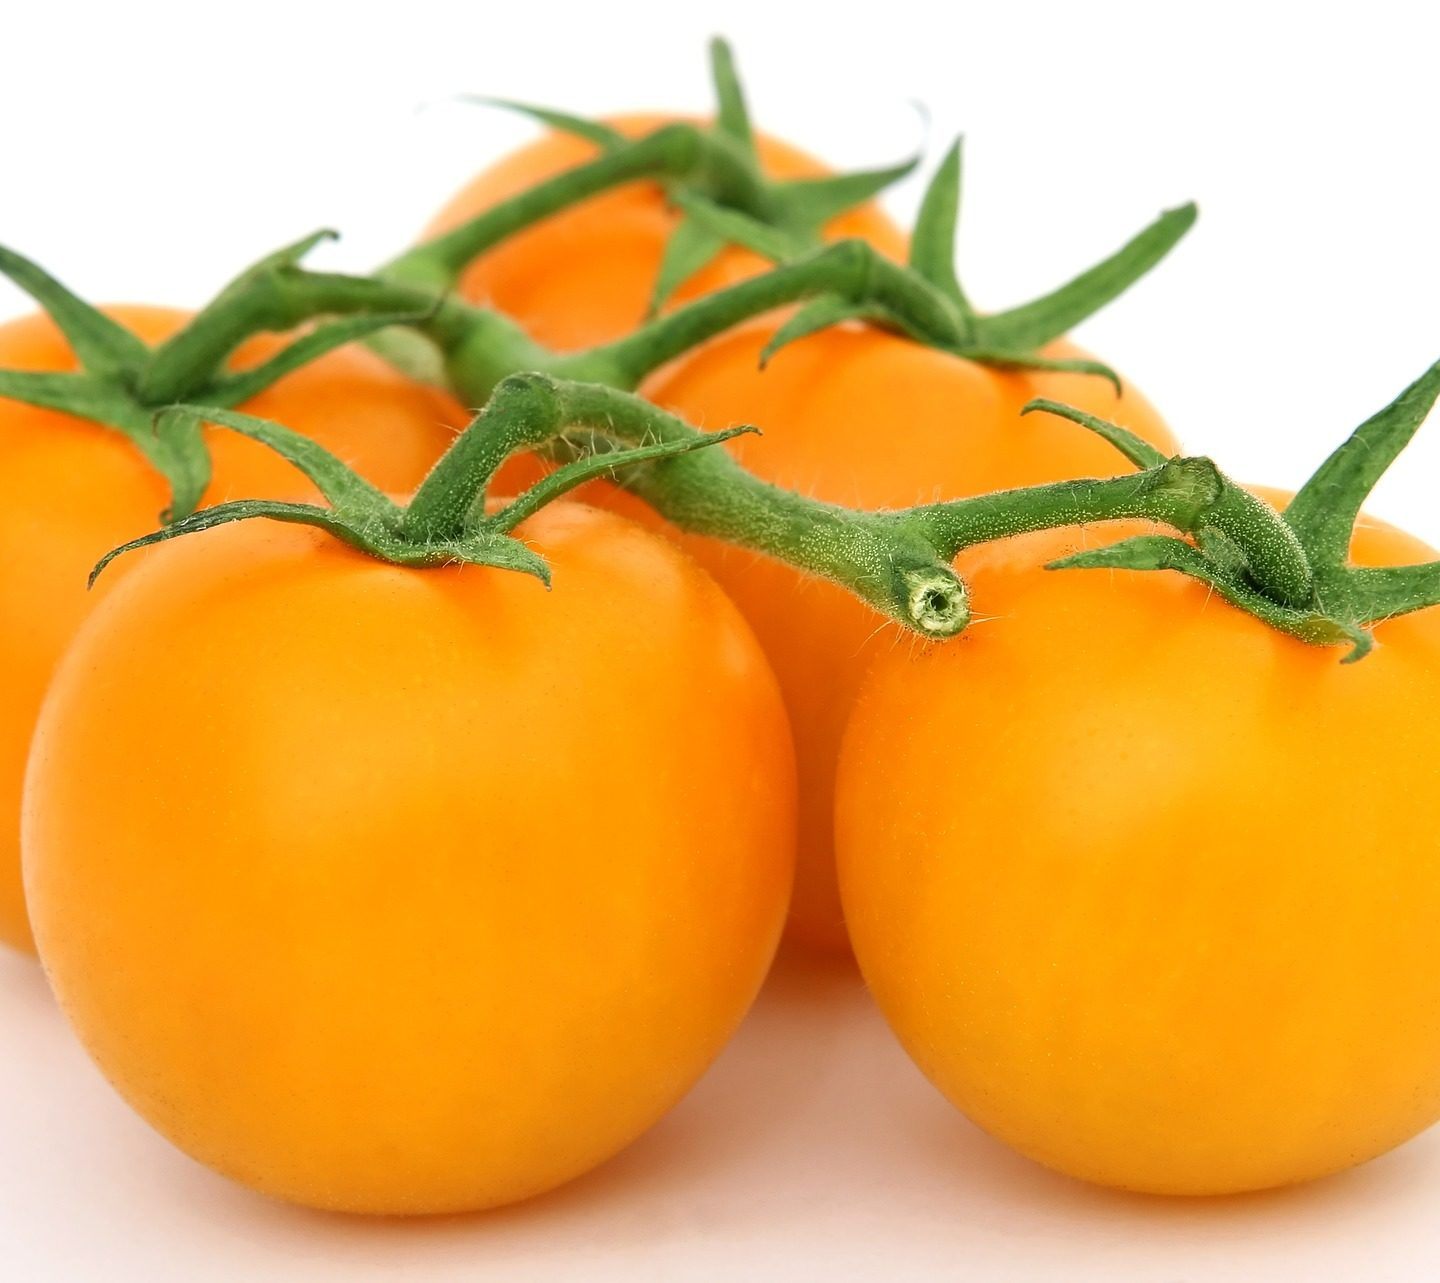 Zeaxanthin‐rich tomato fruit developed through genetic manipulations of carotenoid biosynthesis